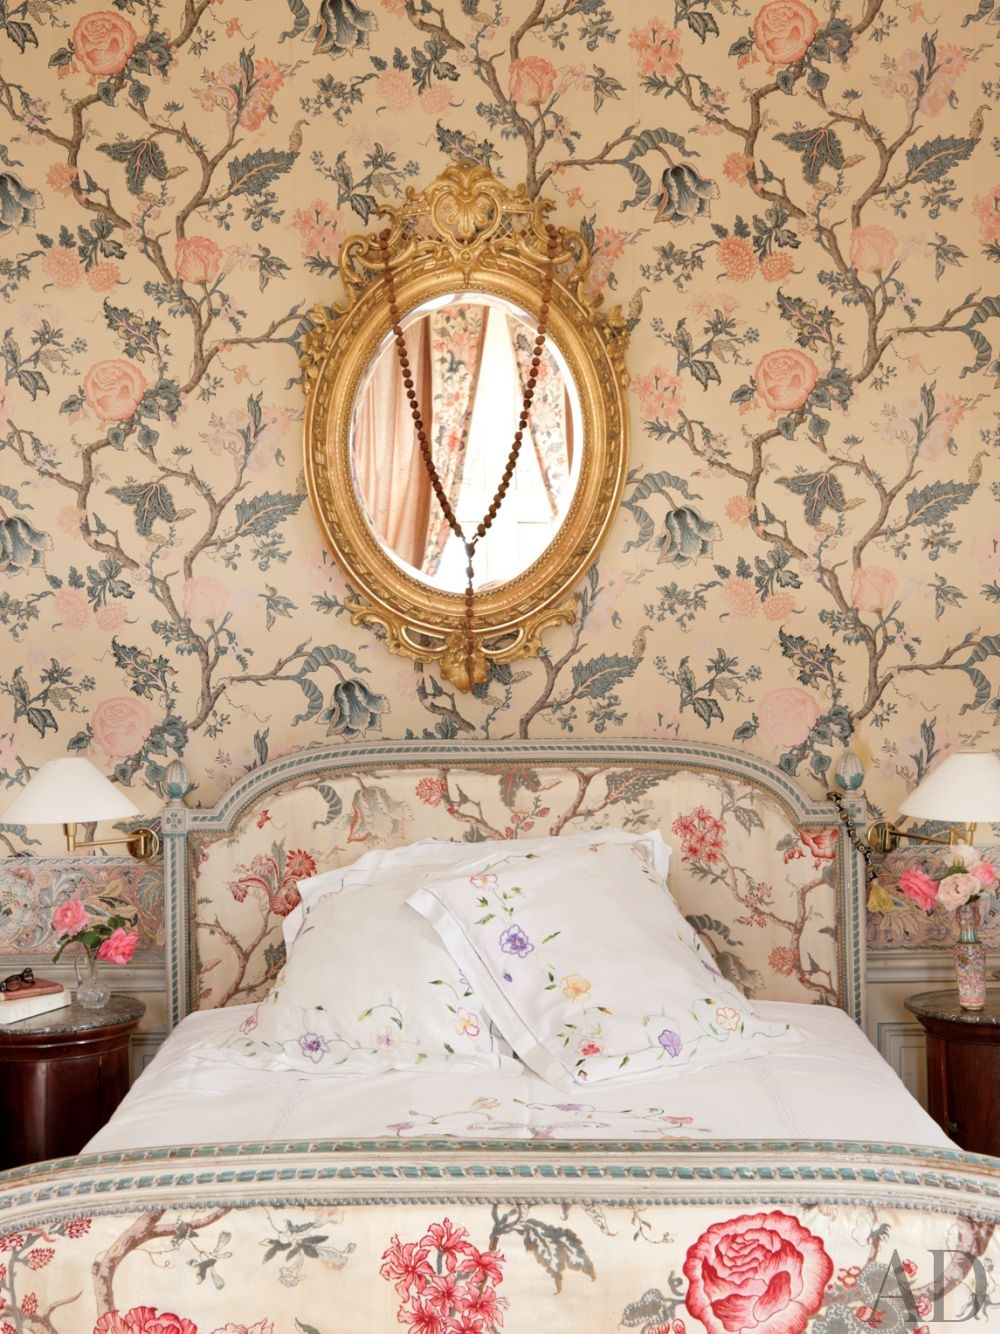 18th Century French Bedroom